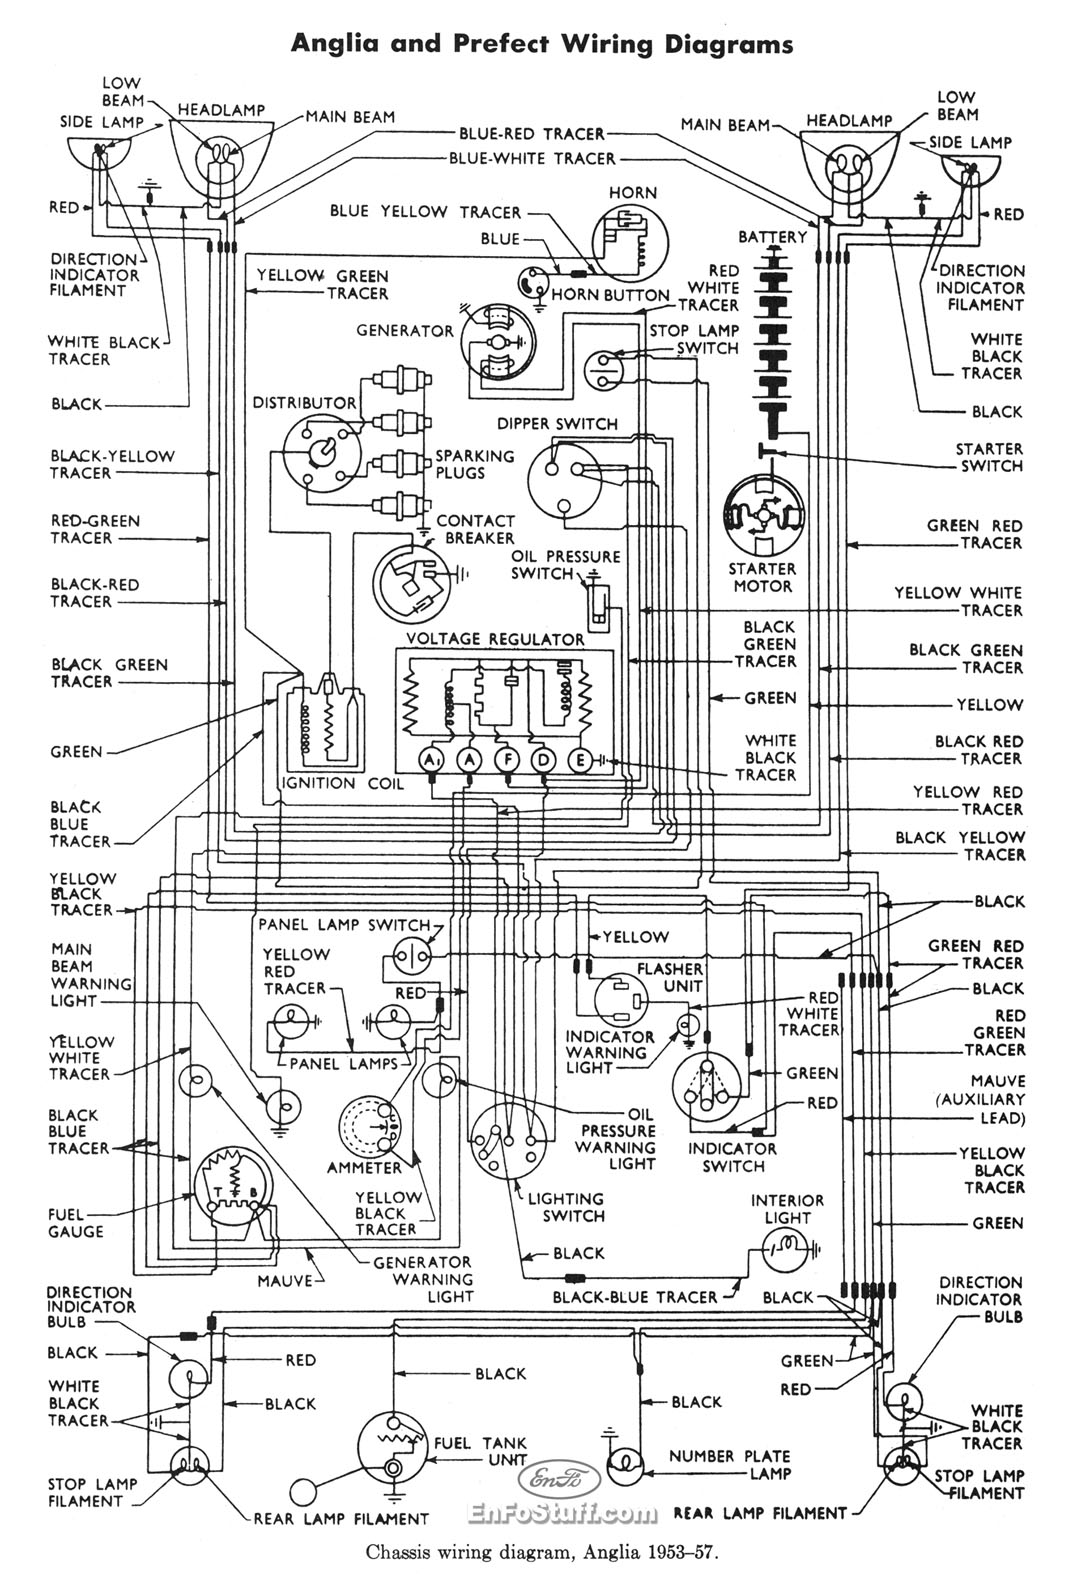 ford 4600 wiring diagram light wiring diagram centreon a ford 4000 wiring for lights wiring diagram [ 1090 x 1575 Pixel ]